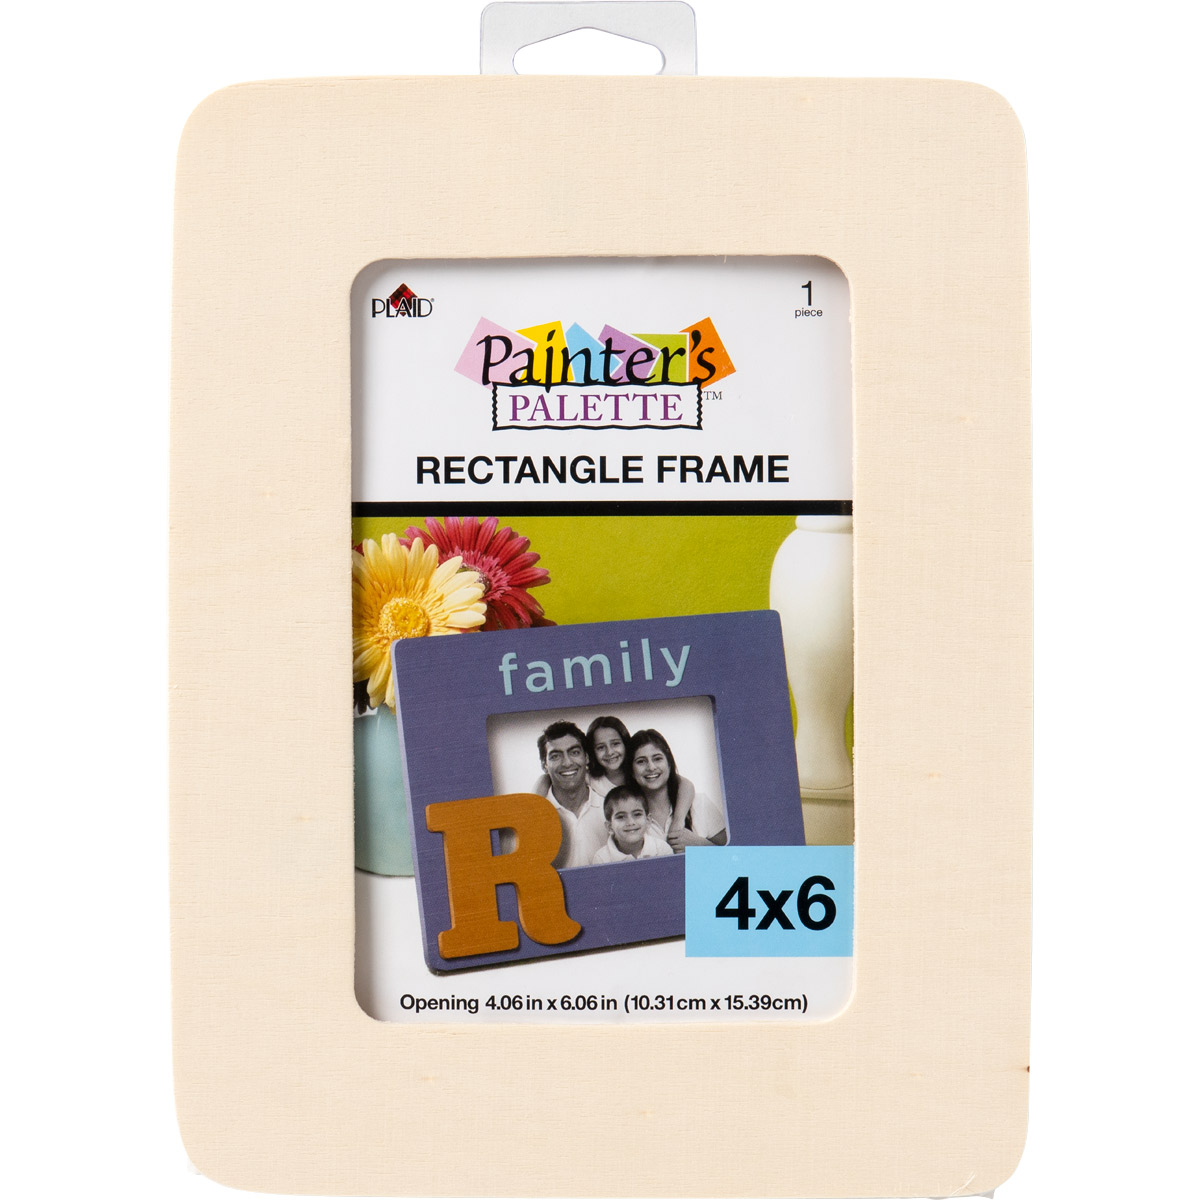 Plaid ® Painter's Palette™ Wood Value Frame - Rectangle, 4 x 6 Opening - 23249